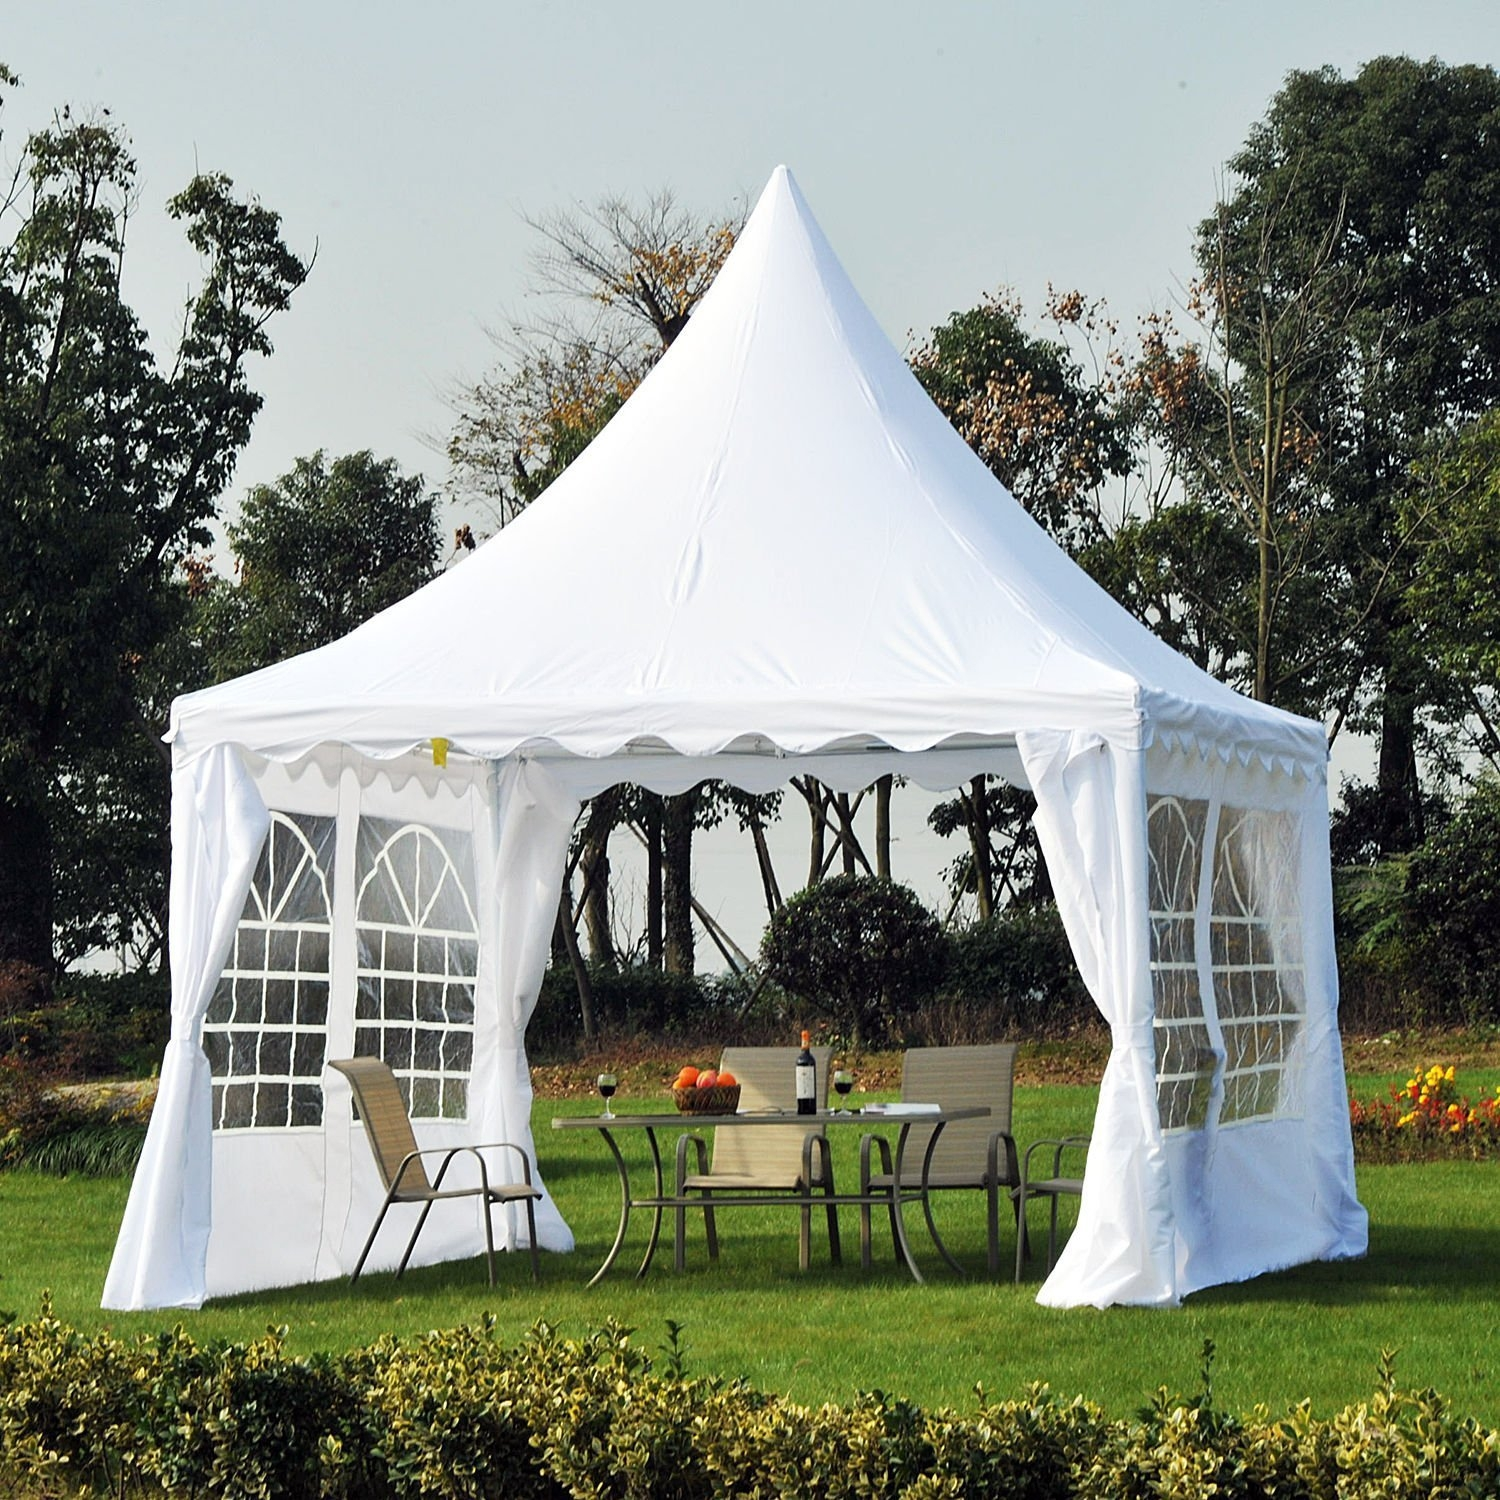 New MTN-G 12'x12' Marquee Party Tent Garden Gazebo Canopy Pagoda Wedding